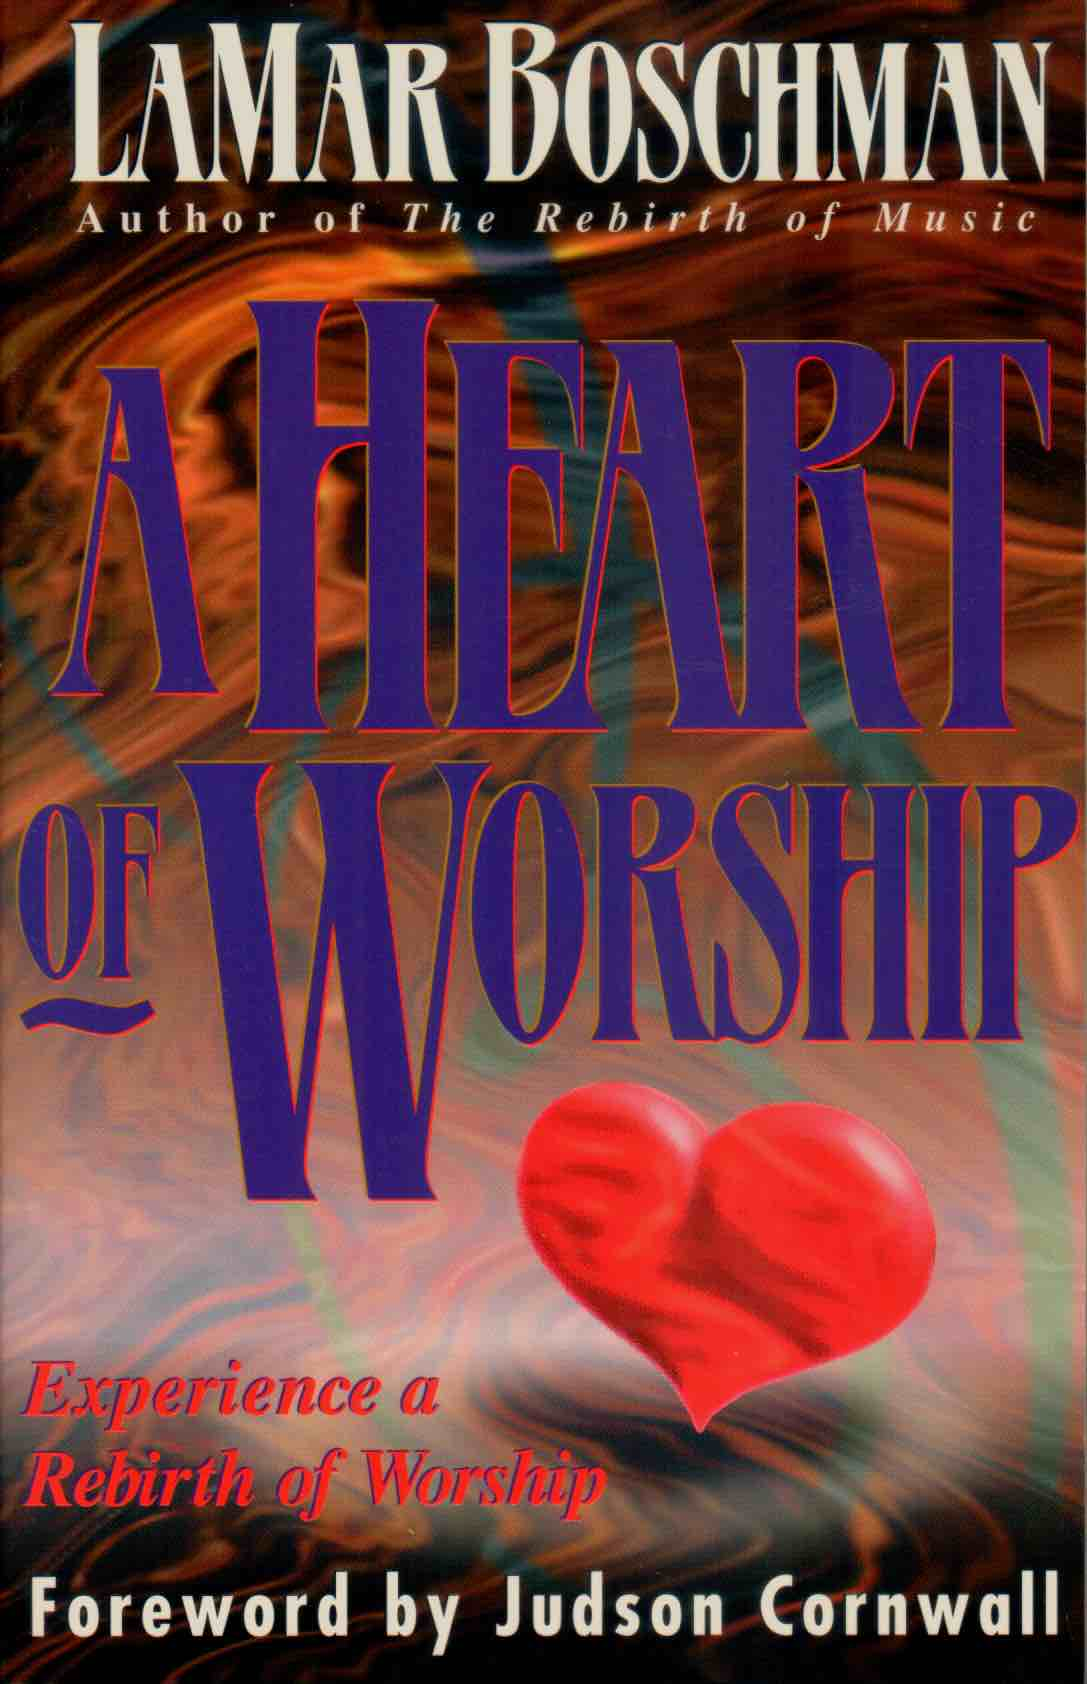 Cover of A Heart Of Worship